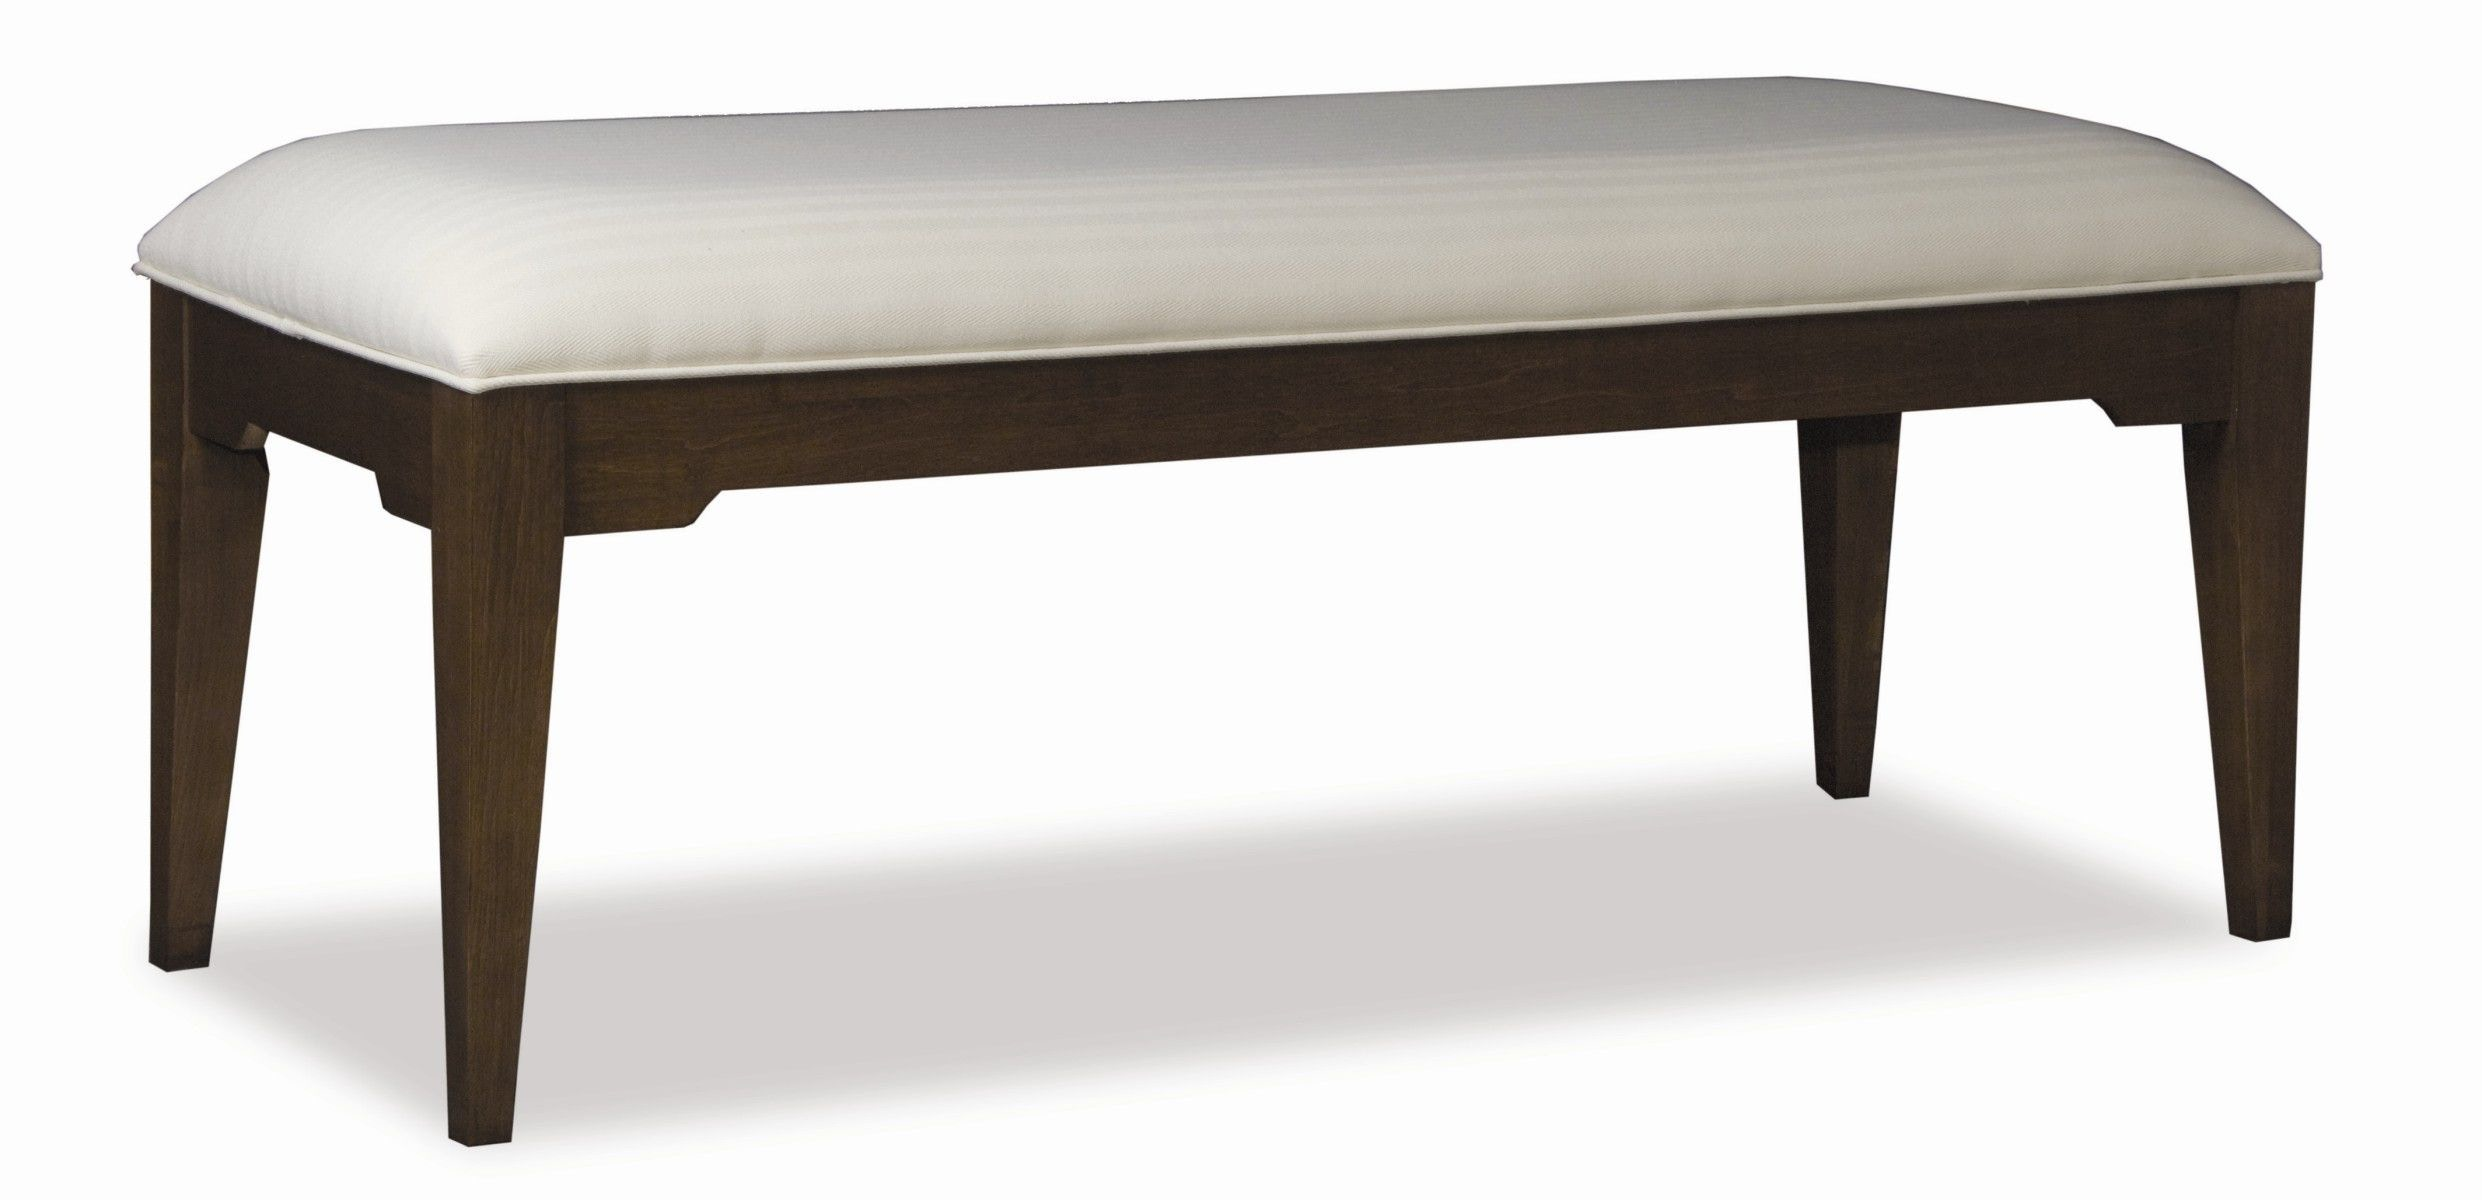 lift chairs edmonton alberta french brasserie durham furniture bedroom contemporary bench 900 010a